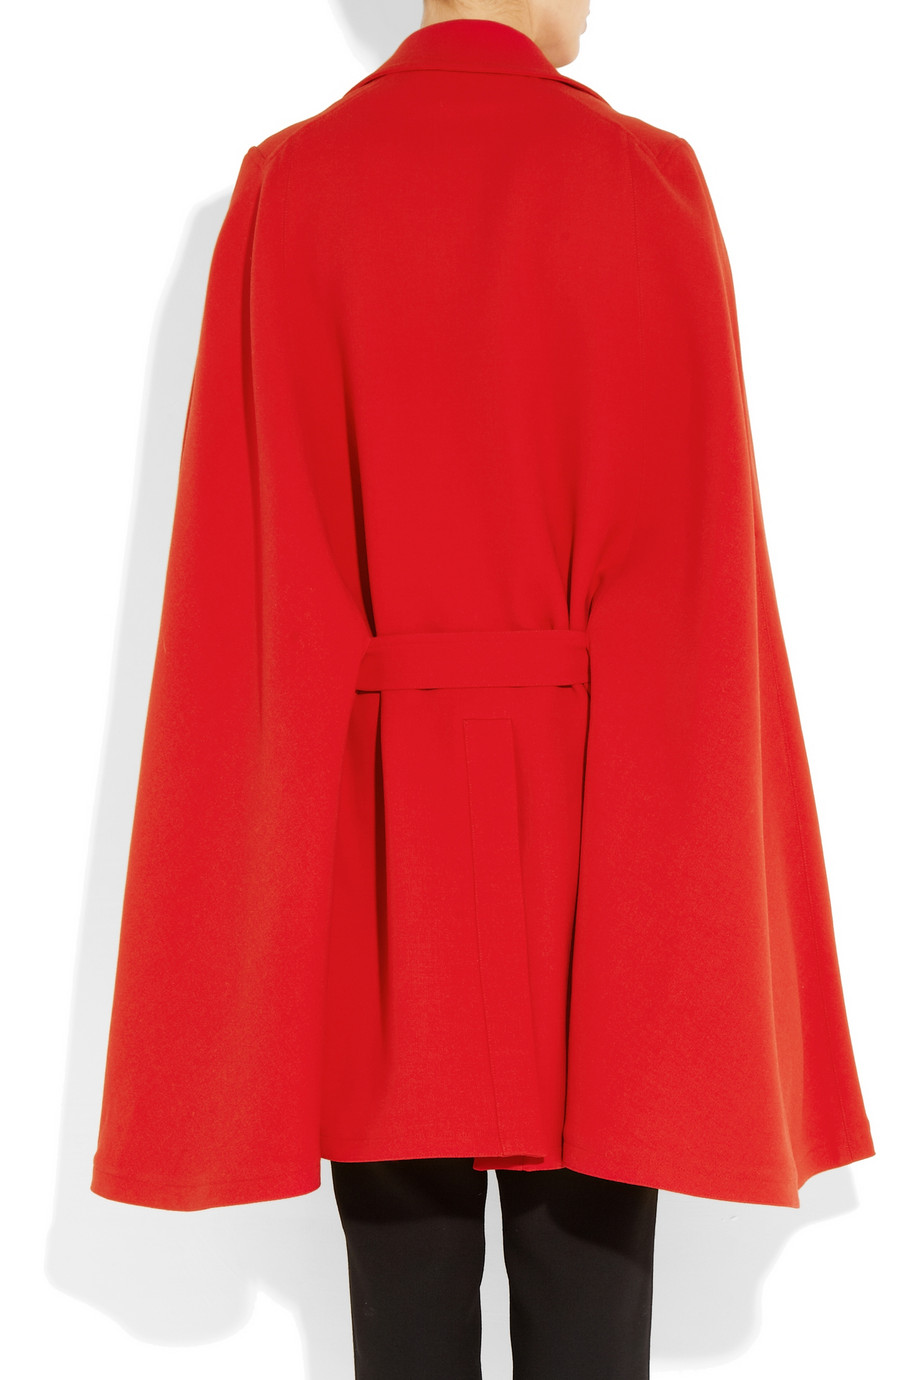 Marni woven wool cape – 70% at the outnet.com